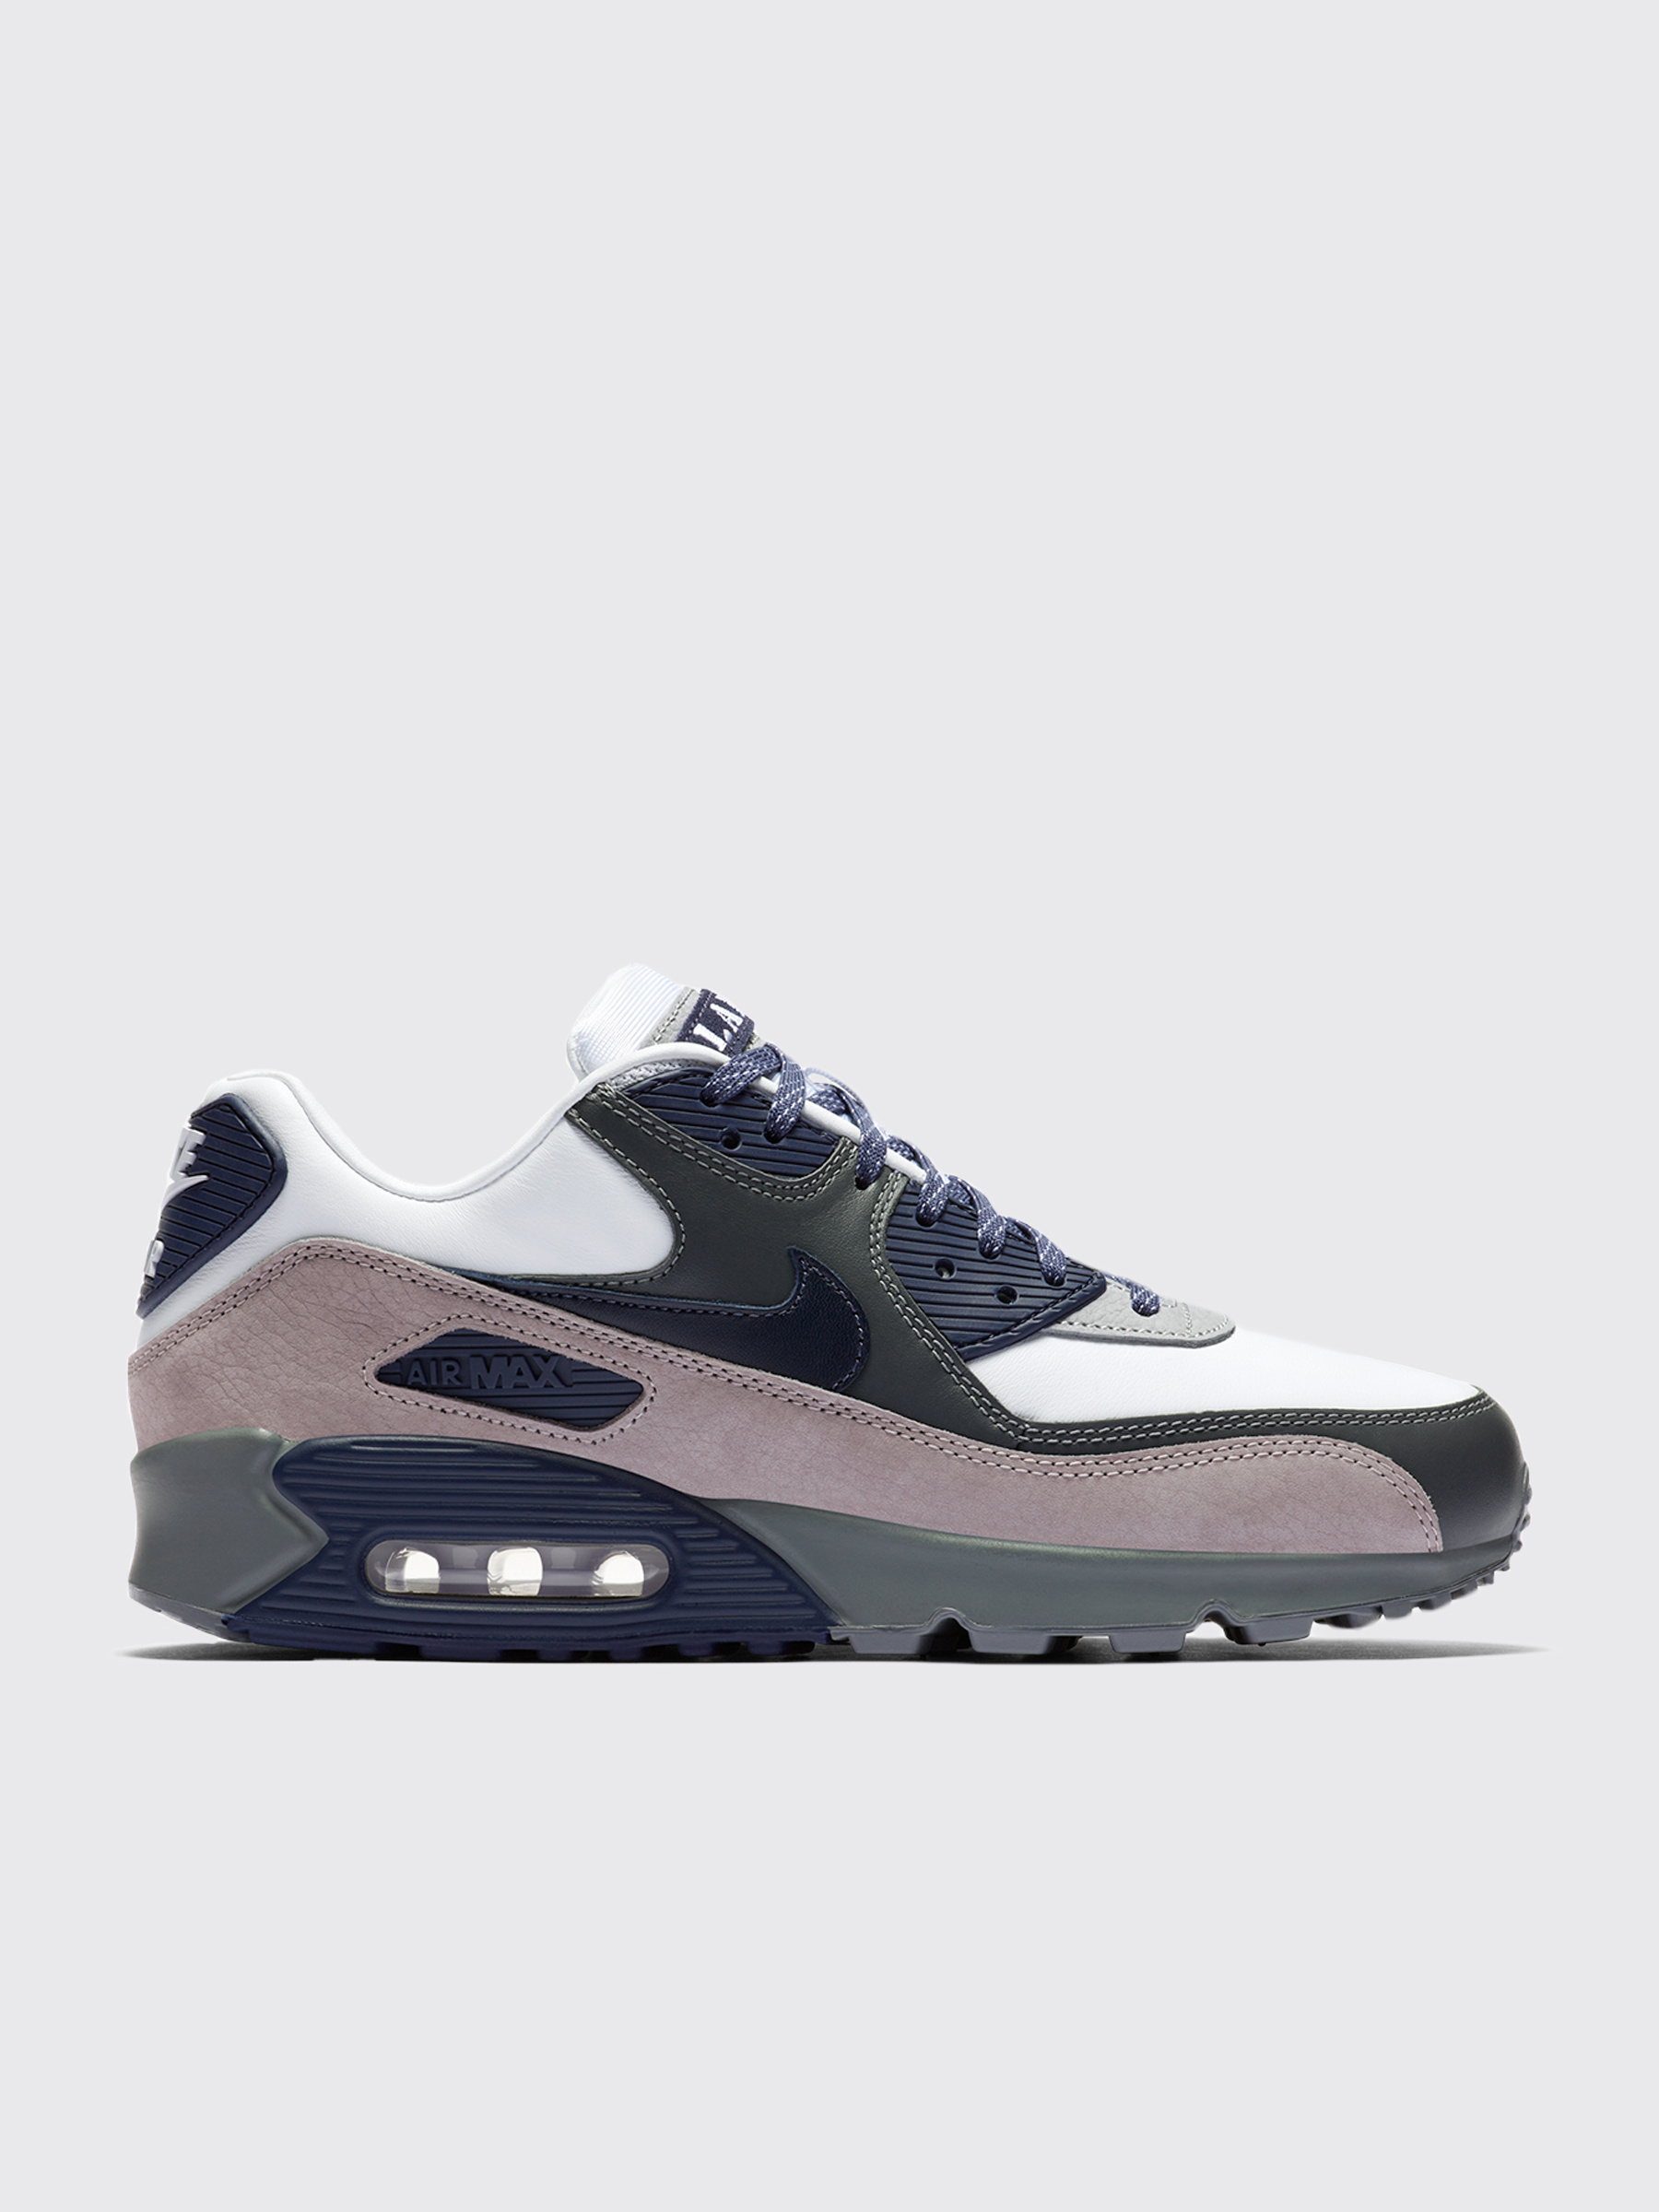 Nike Air Max 90 NRG Lahar White Neutral Indigo